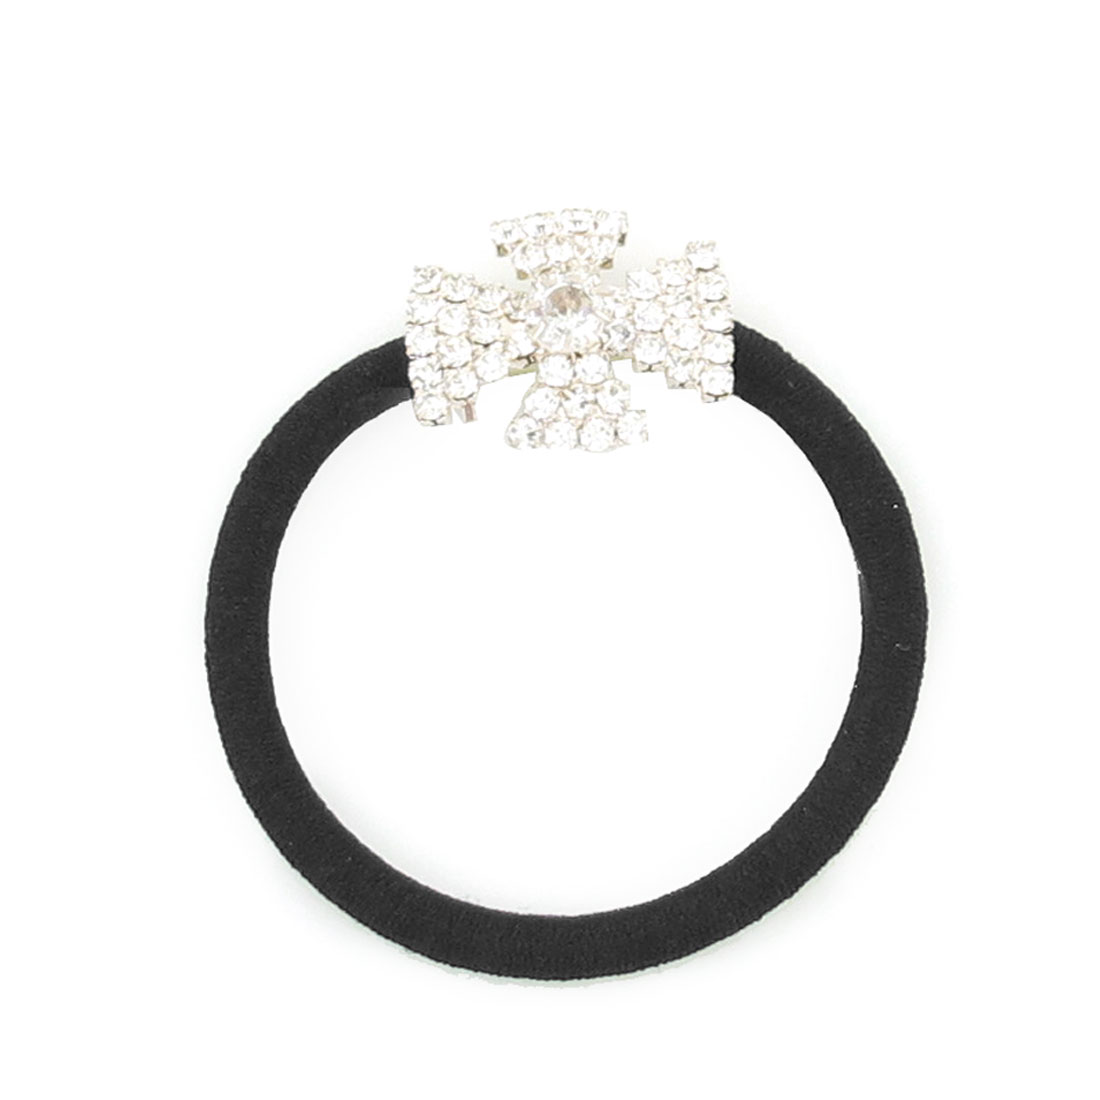 Black Rhinestone Inlaid Cross Decor Stretchy Band Ponytail Holder